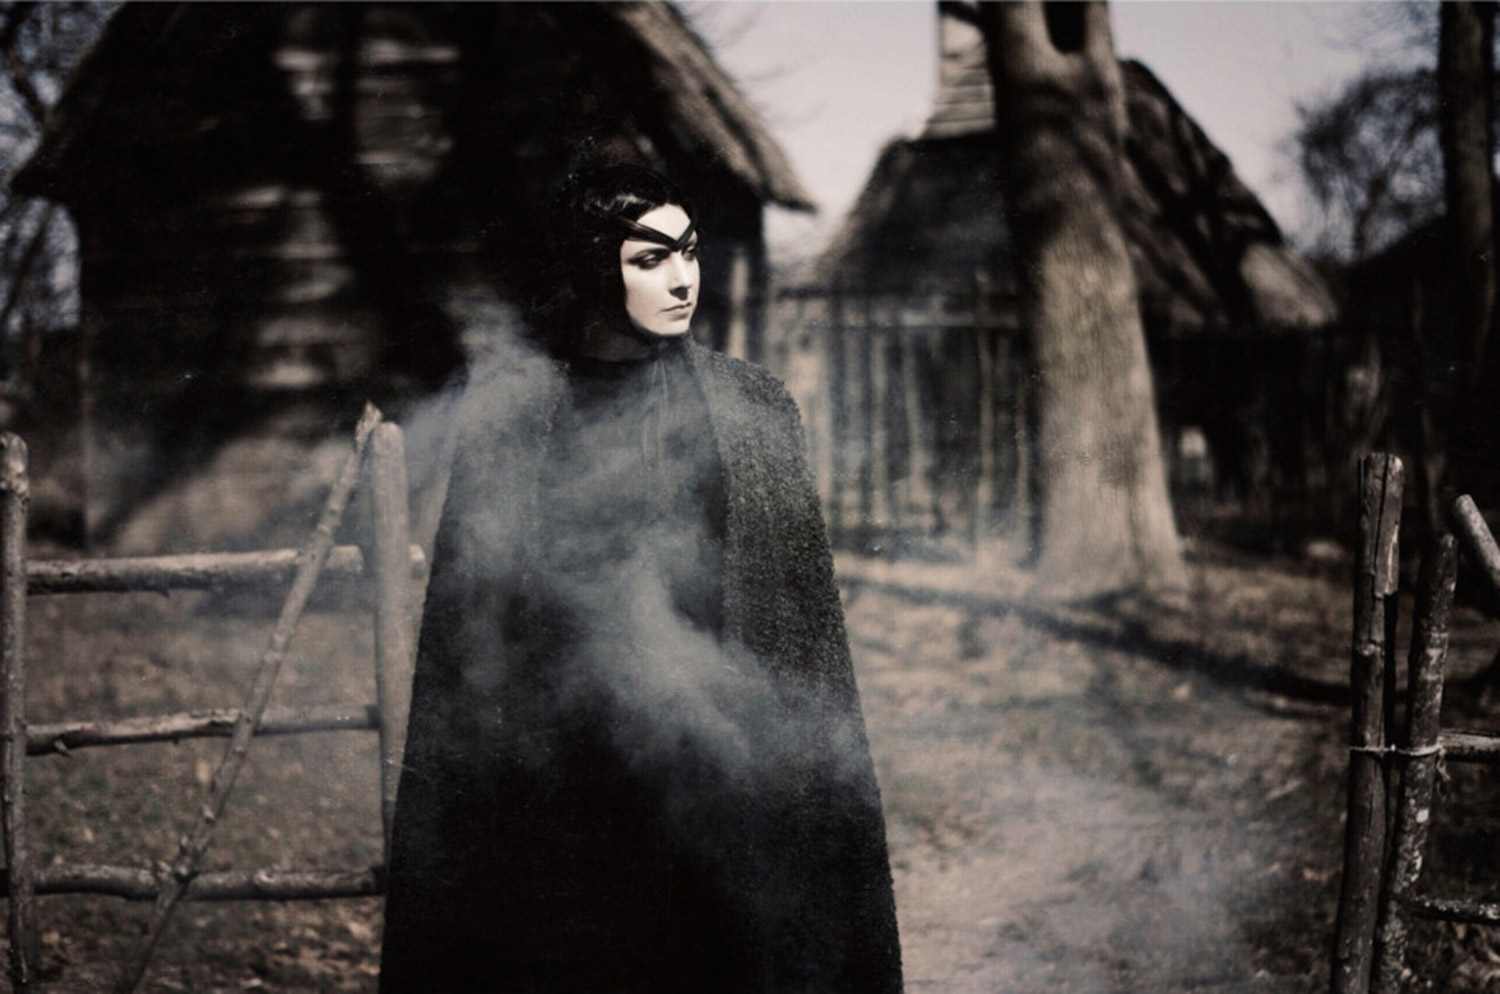 Hogan Mclaughlin - Upon the Heath of Bedlam, photographer Bill Crisafi, single witch-like figure